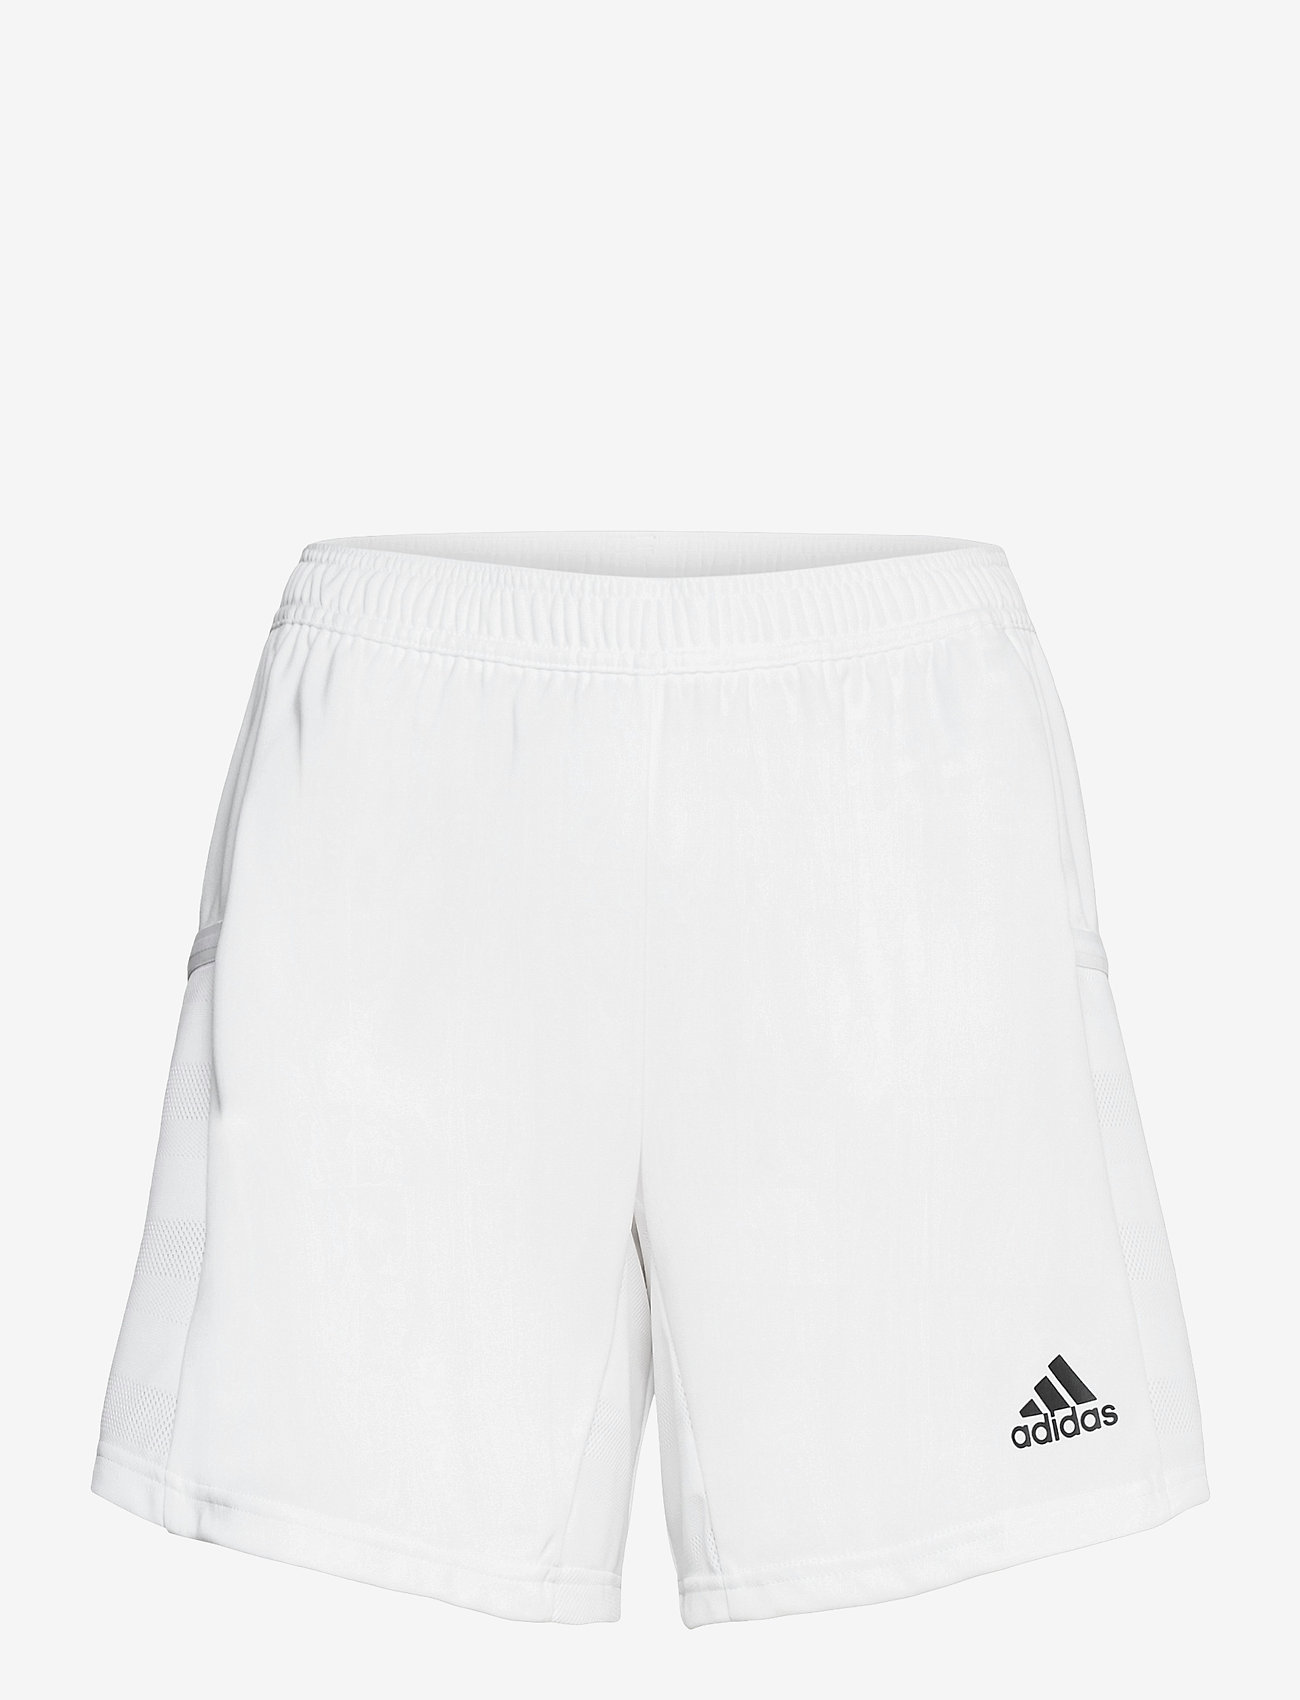 adidas Performance - Team 19 Shorts W - training korte broek - white - 0